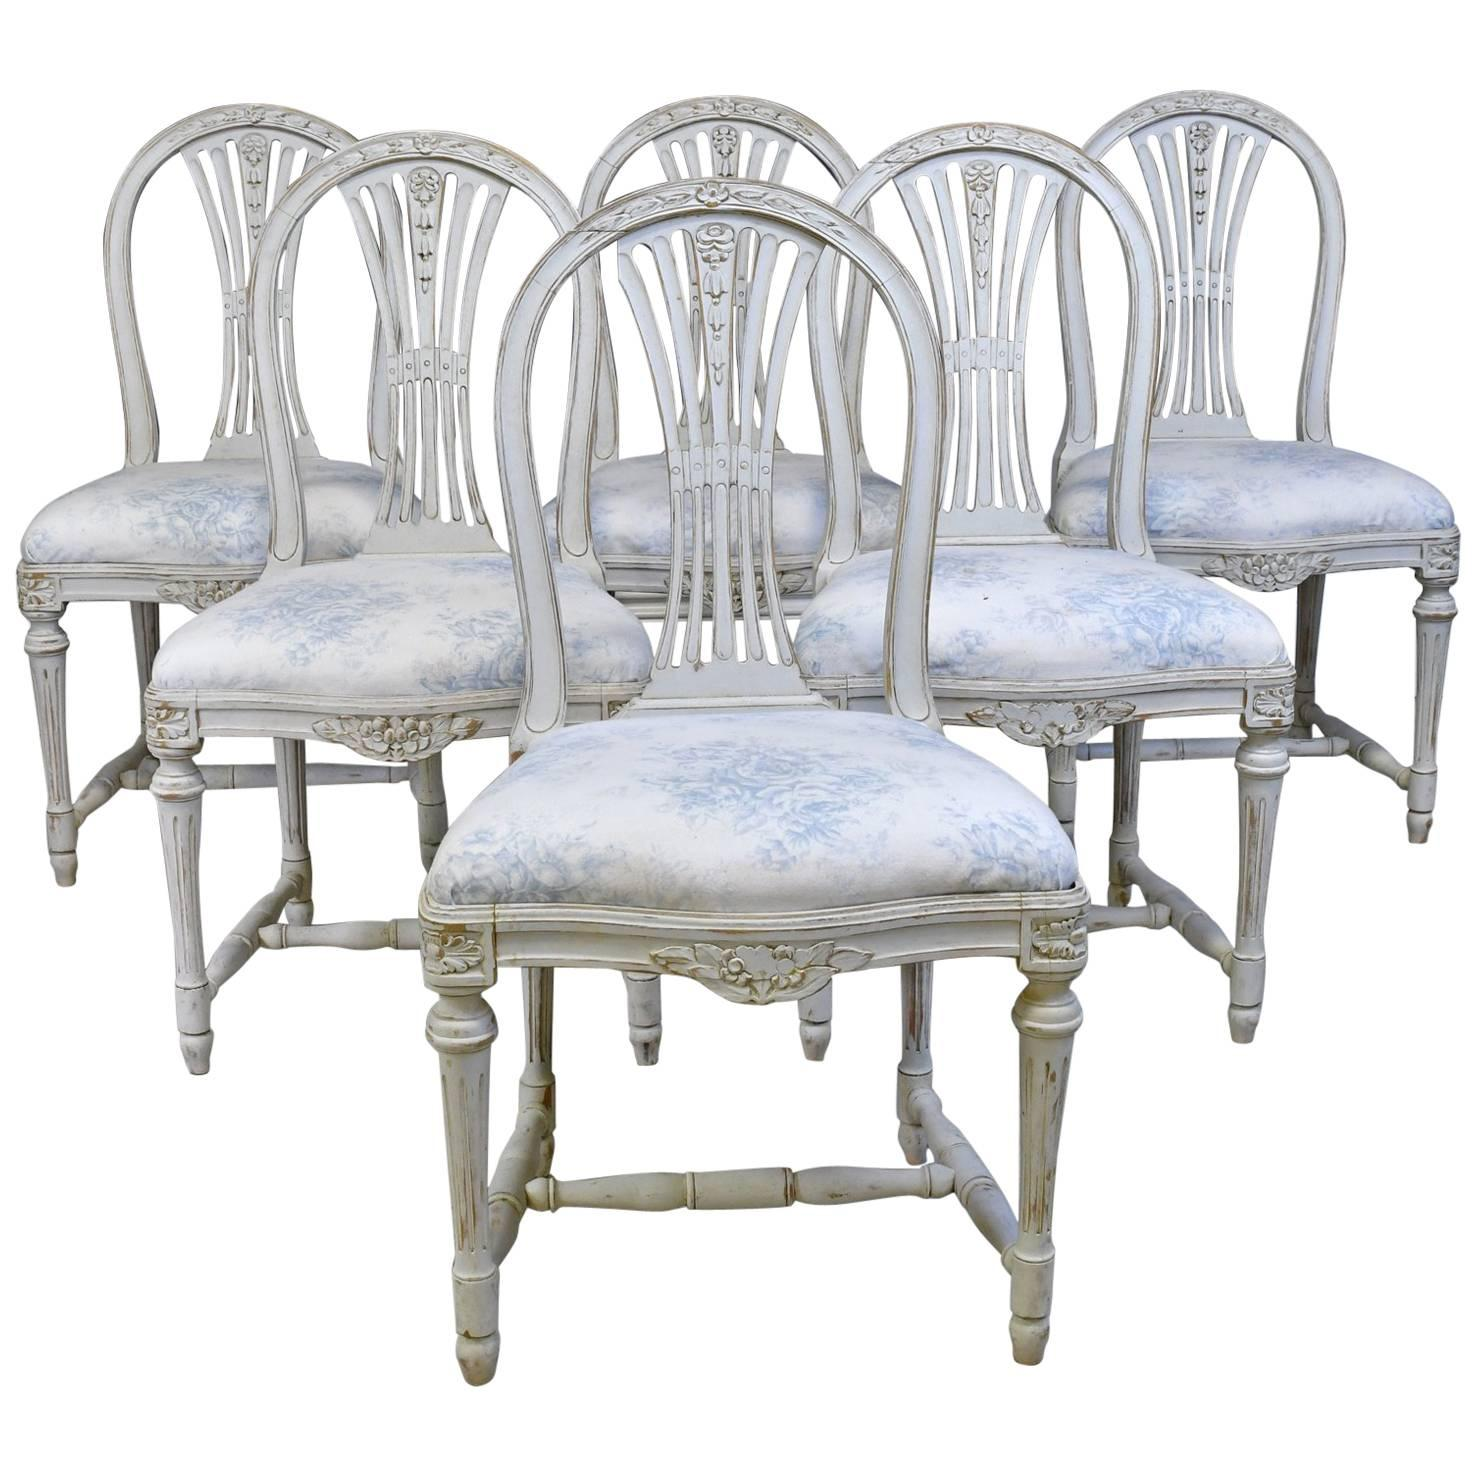 Incroyable Set Of Six Swedish Gustavian Style Painted Dining Chairs, C. 1890 1819